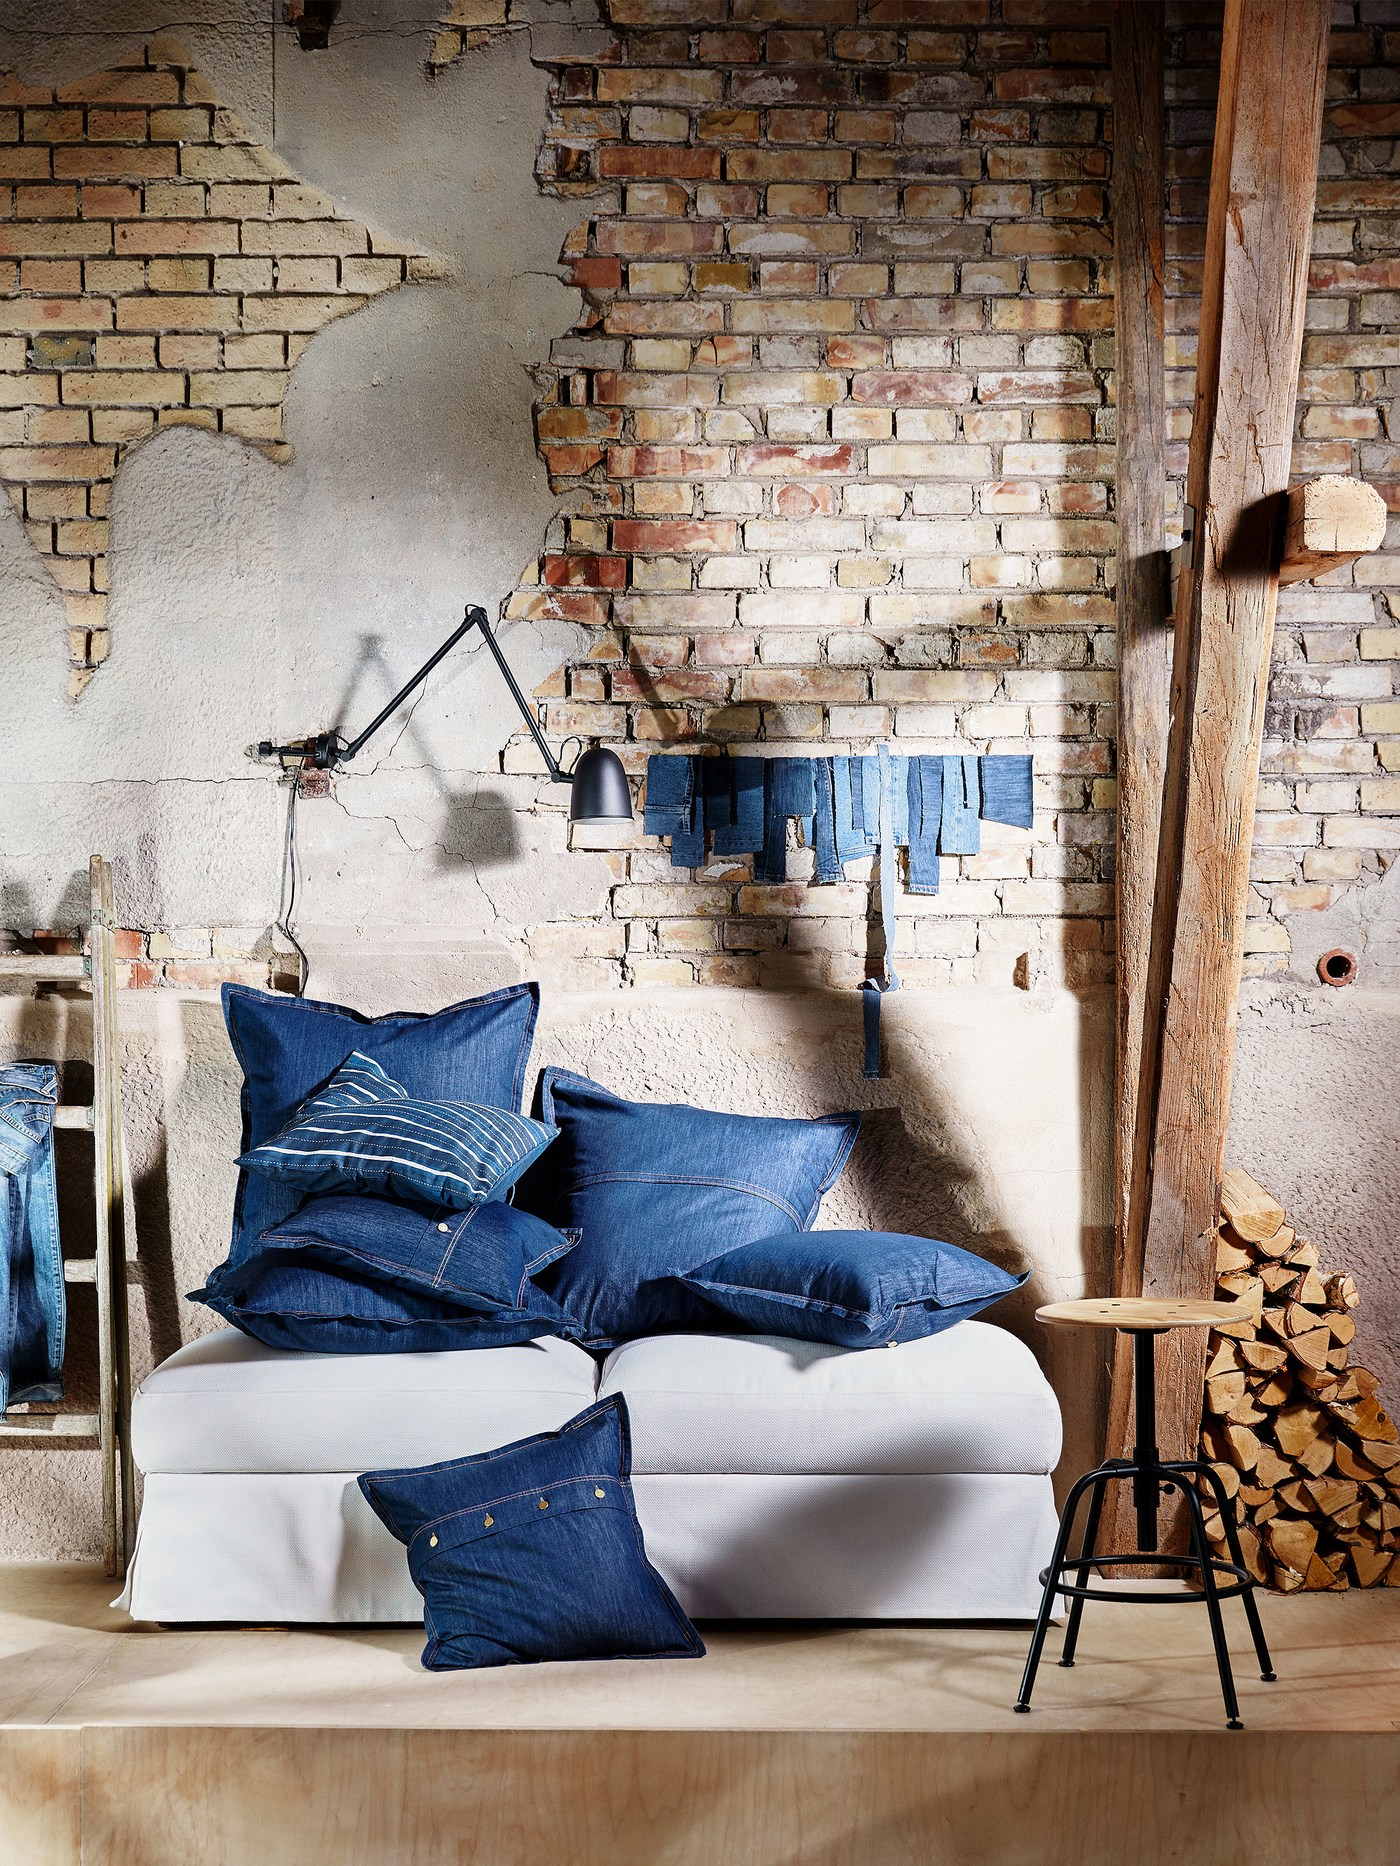 Piled on a sofa, in front of a brick wall, square denim SISSIL cushion covers with details like buttons and jean-like seams.